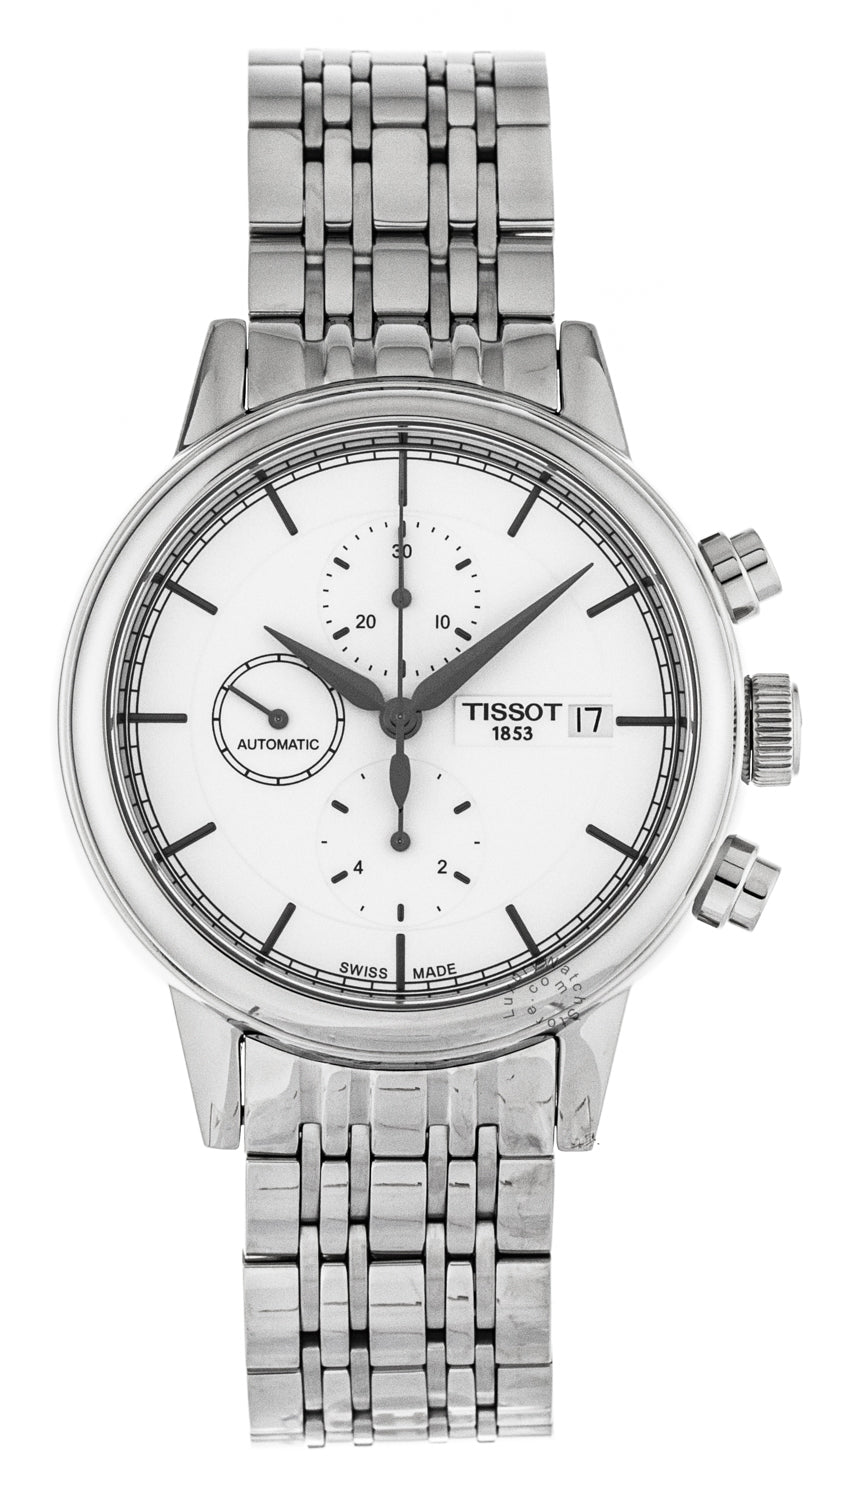 Tissot Carson Chronograph Automatic Silver Men's Watch T0854271101100